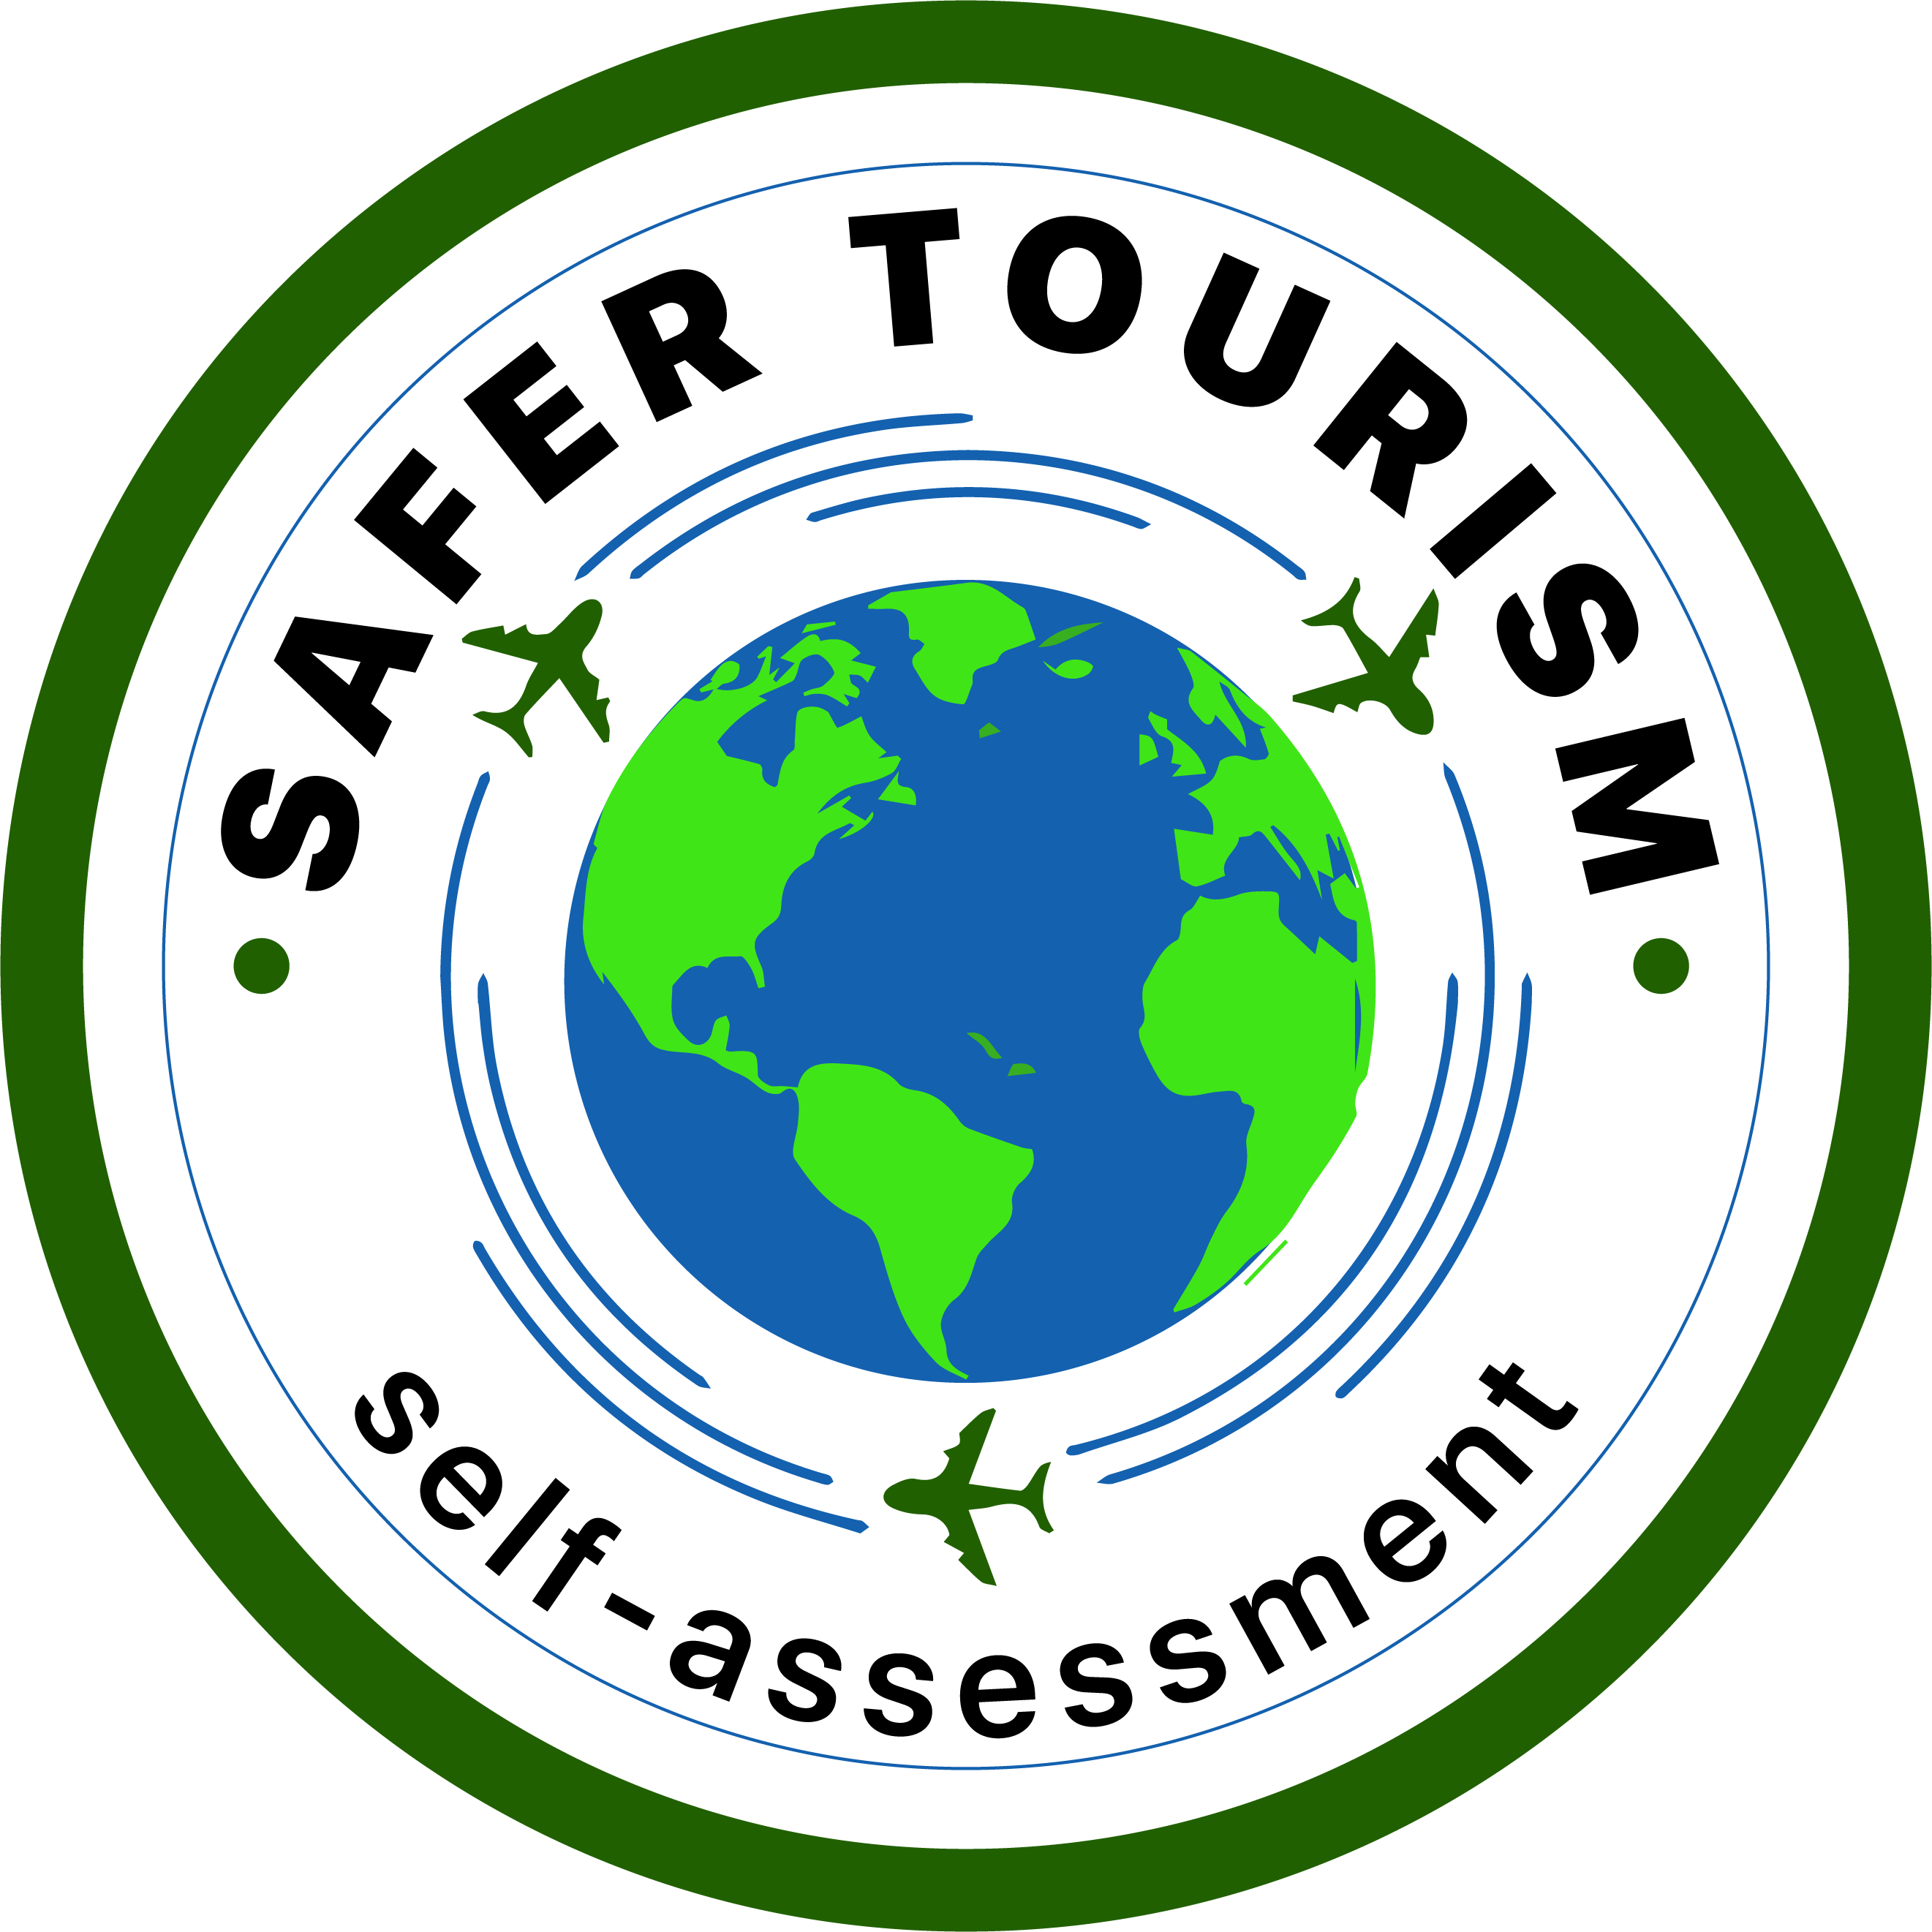 safer-tourism